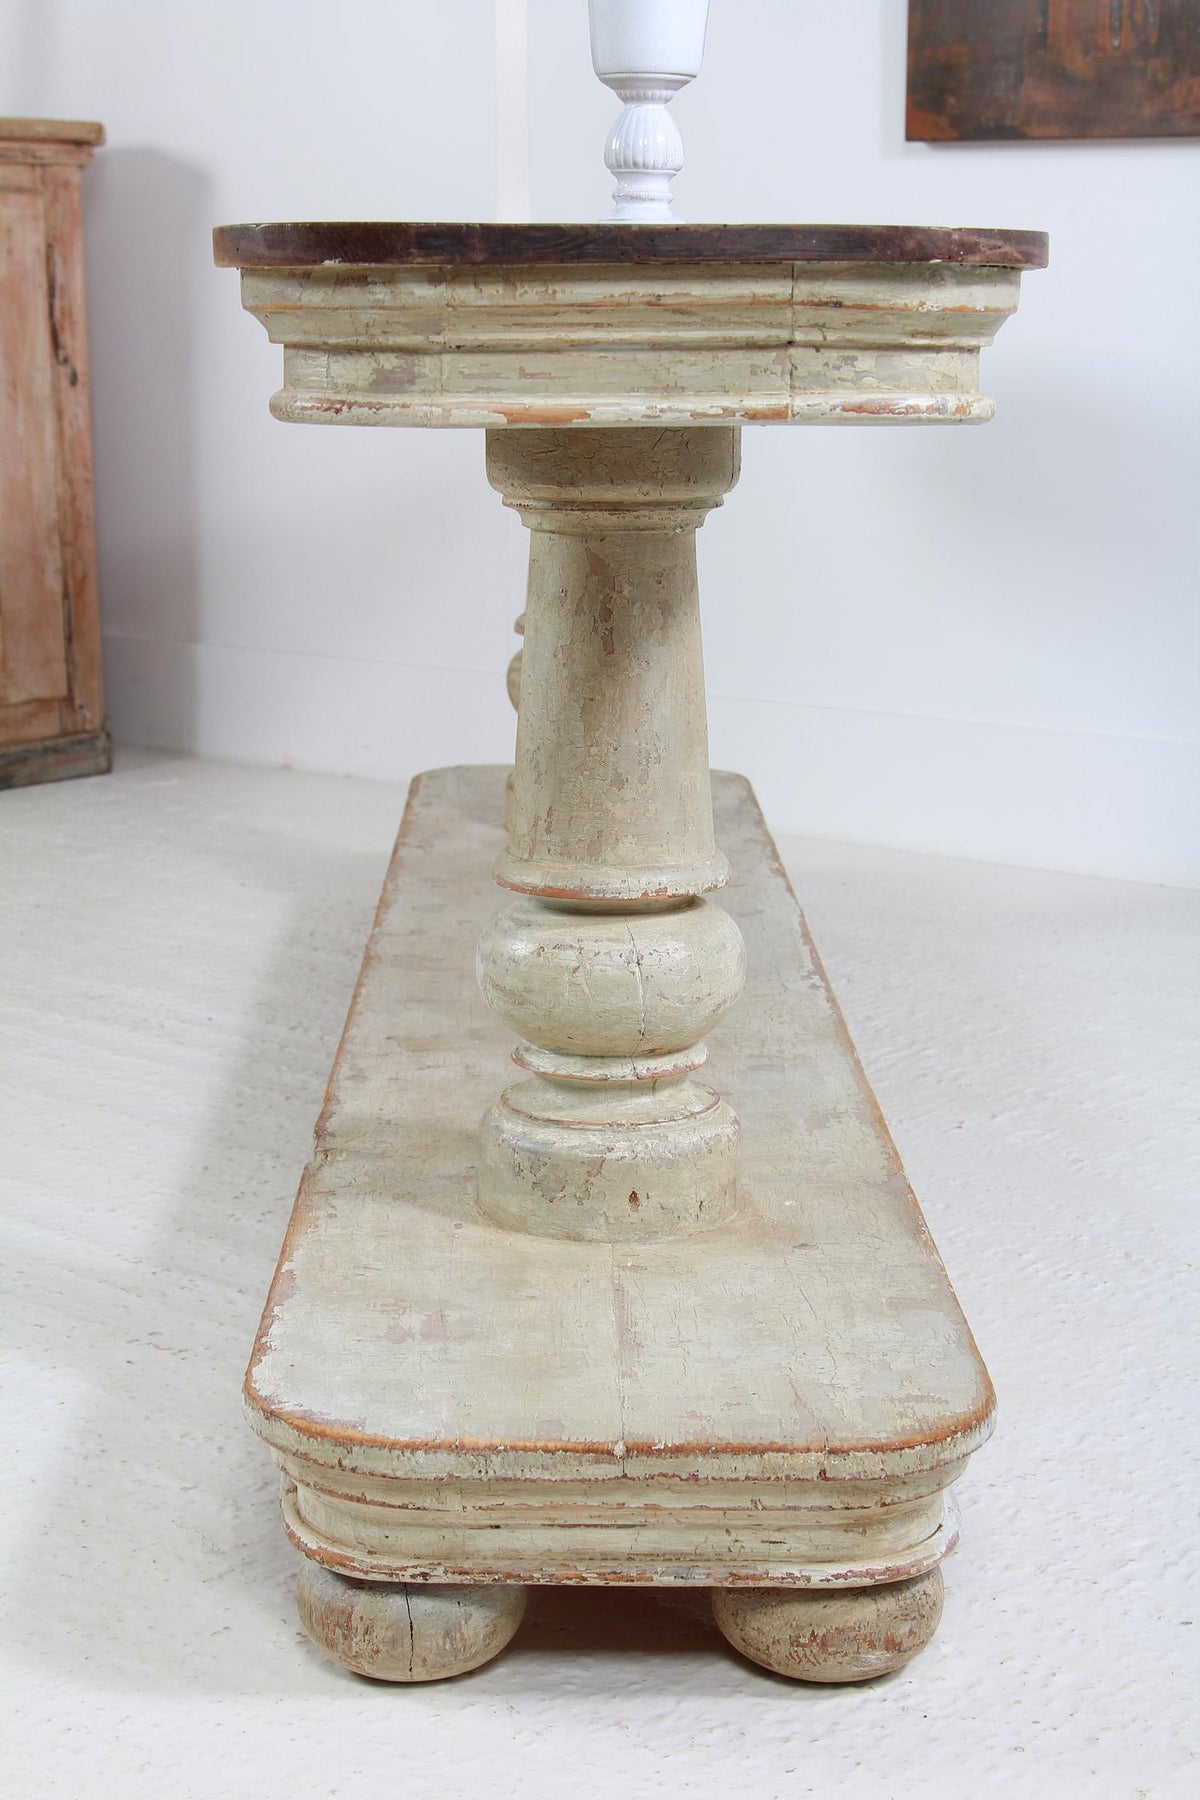 Outstanding 19thC Italian Grand Scale Console Table